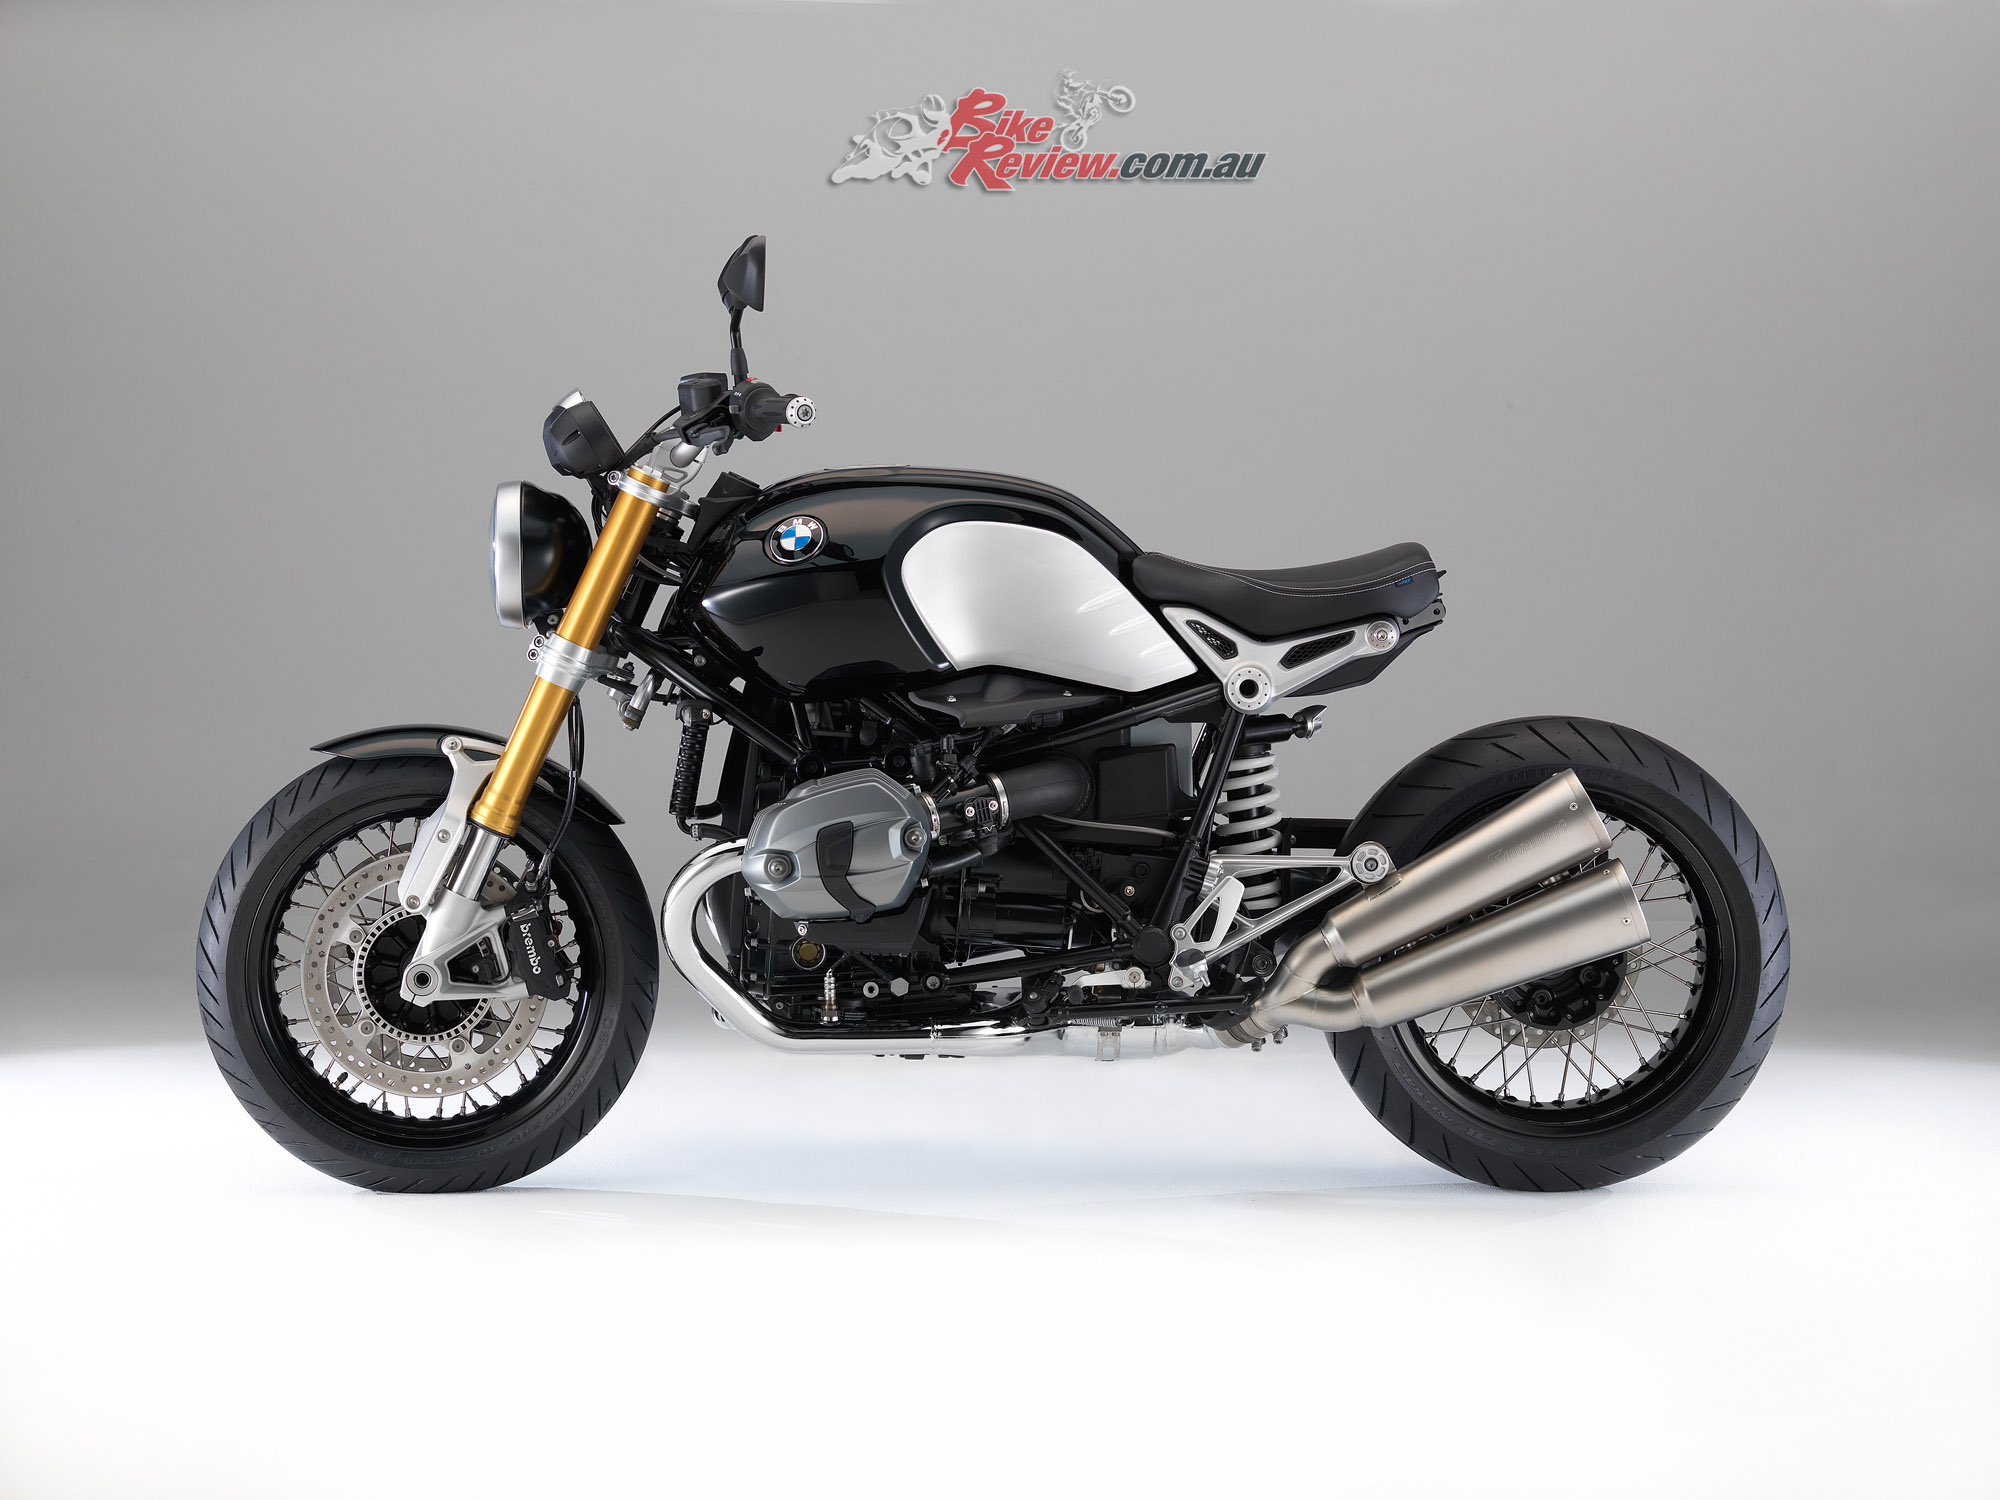 bmw motorrad r ninet scrambler bike review. Black Bedroom Furniture Sets. Home Design Ideas